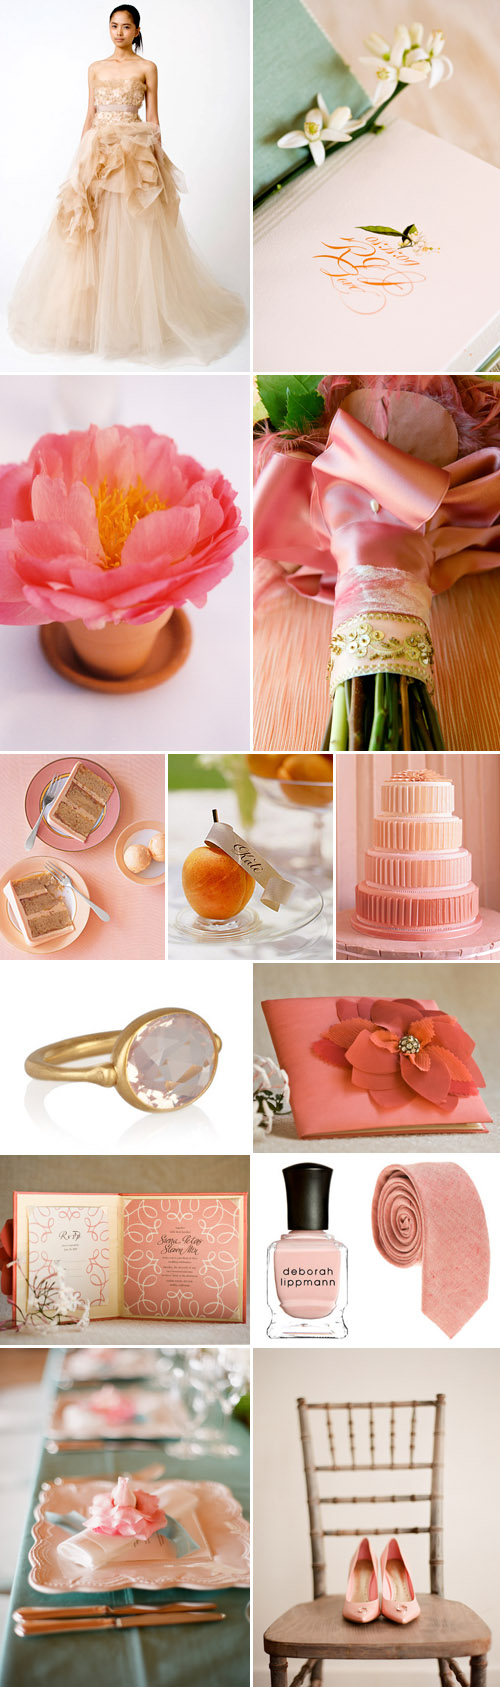 peach, pink and coral wedding color palette and inspiration board